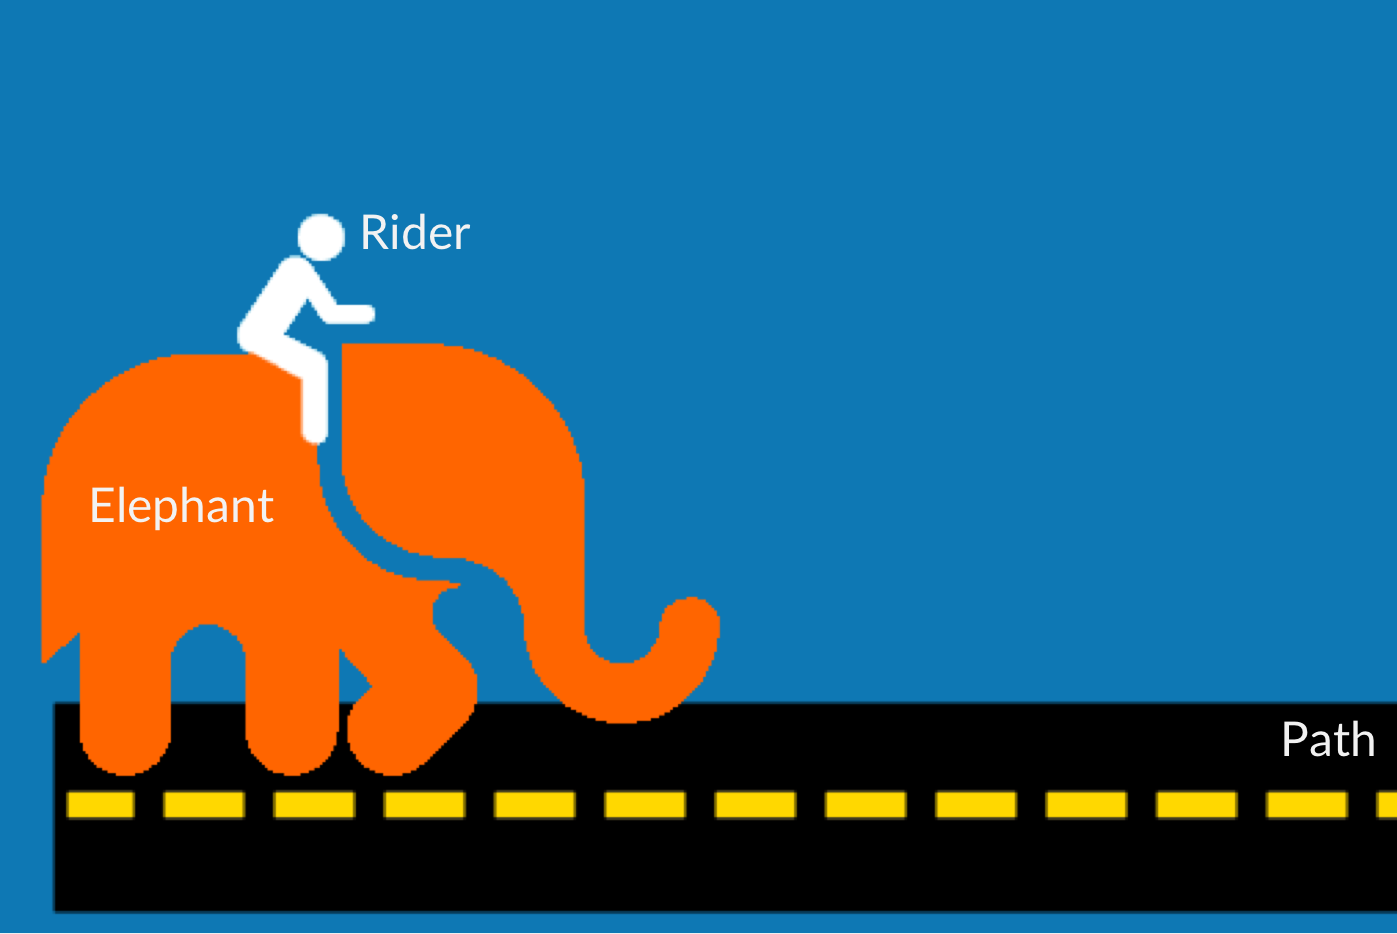 The rider, elephant and the path..